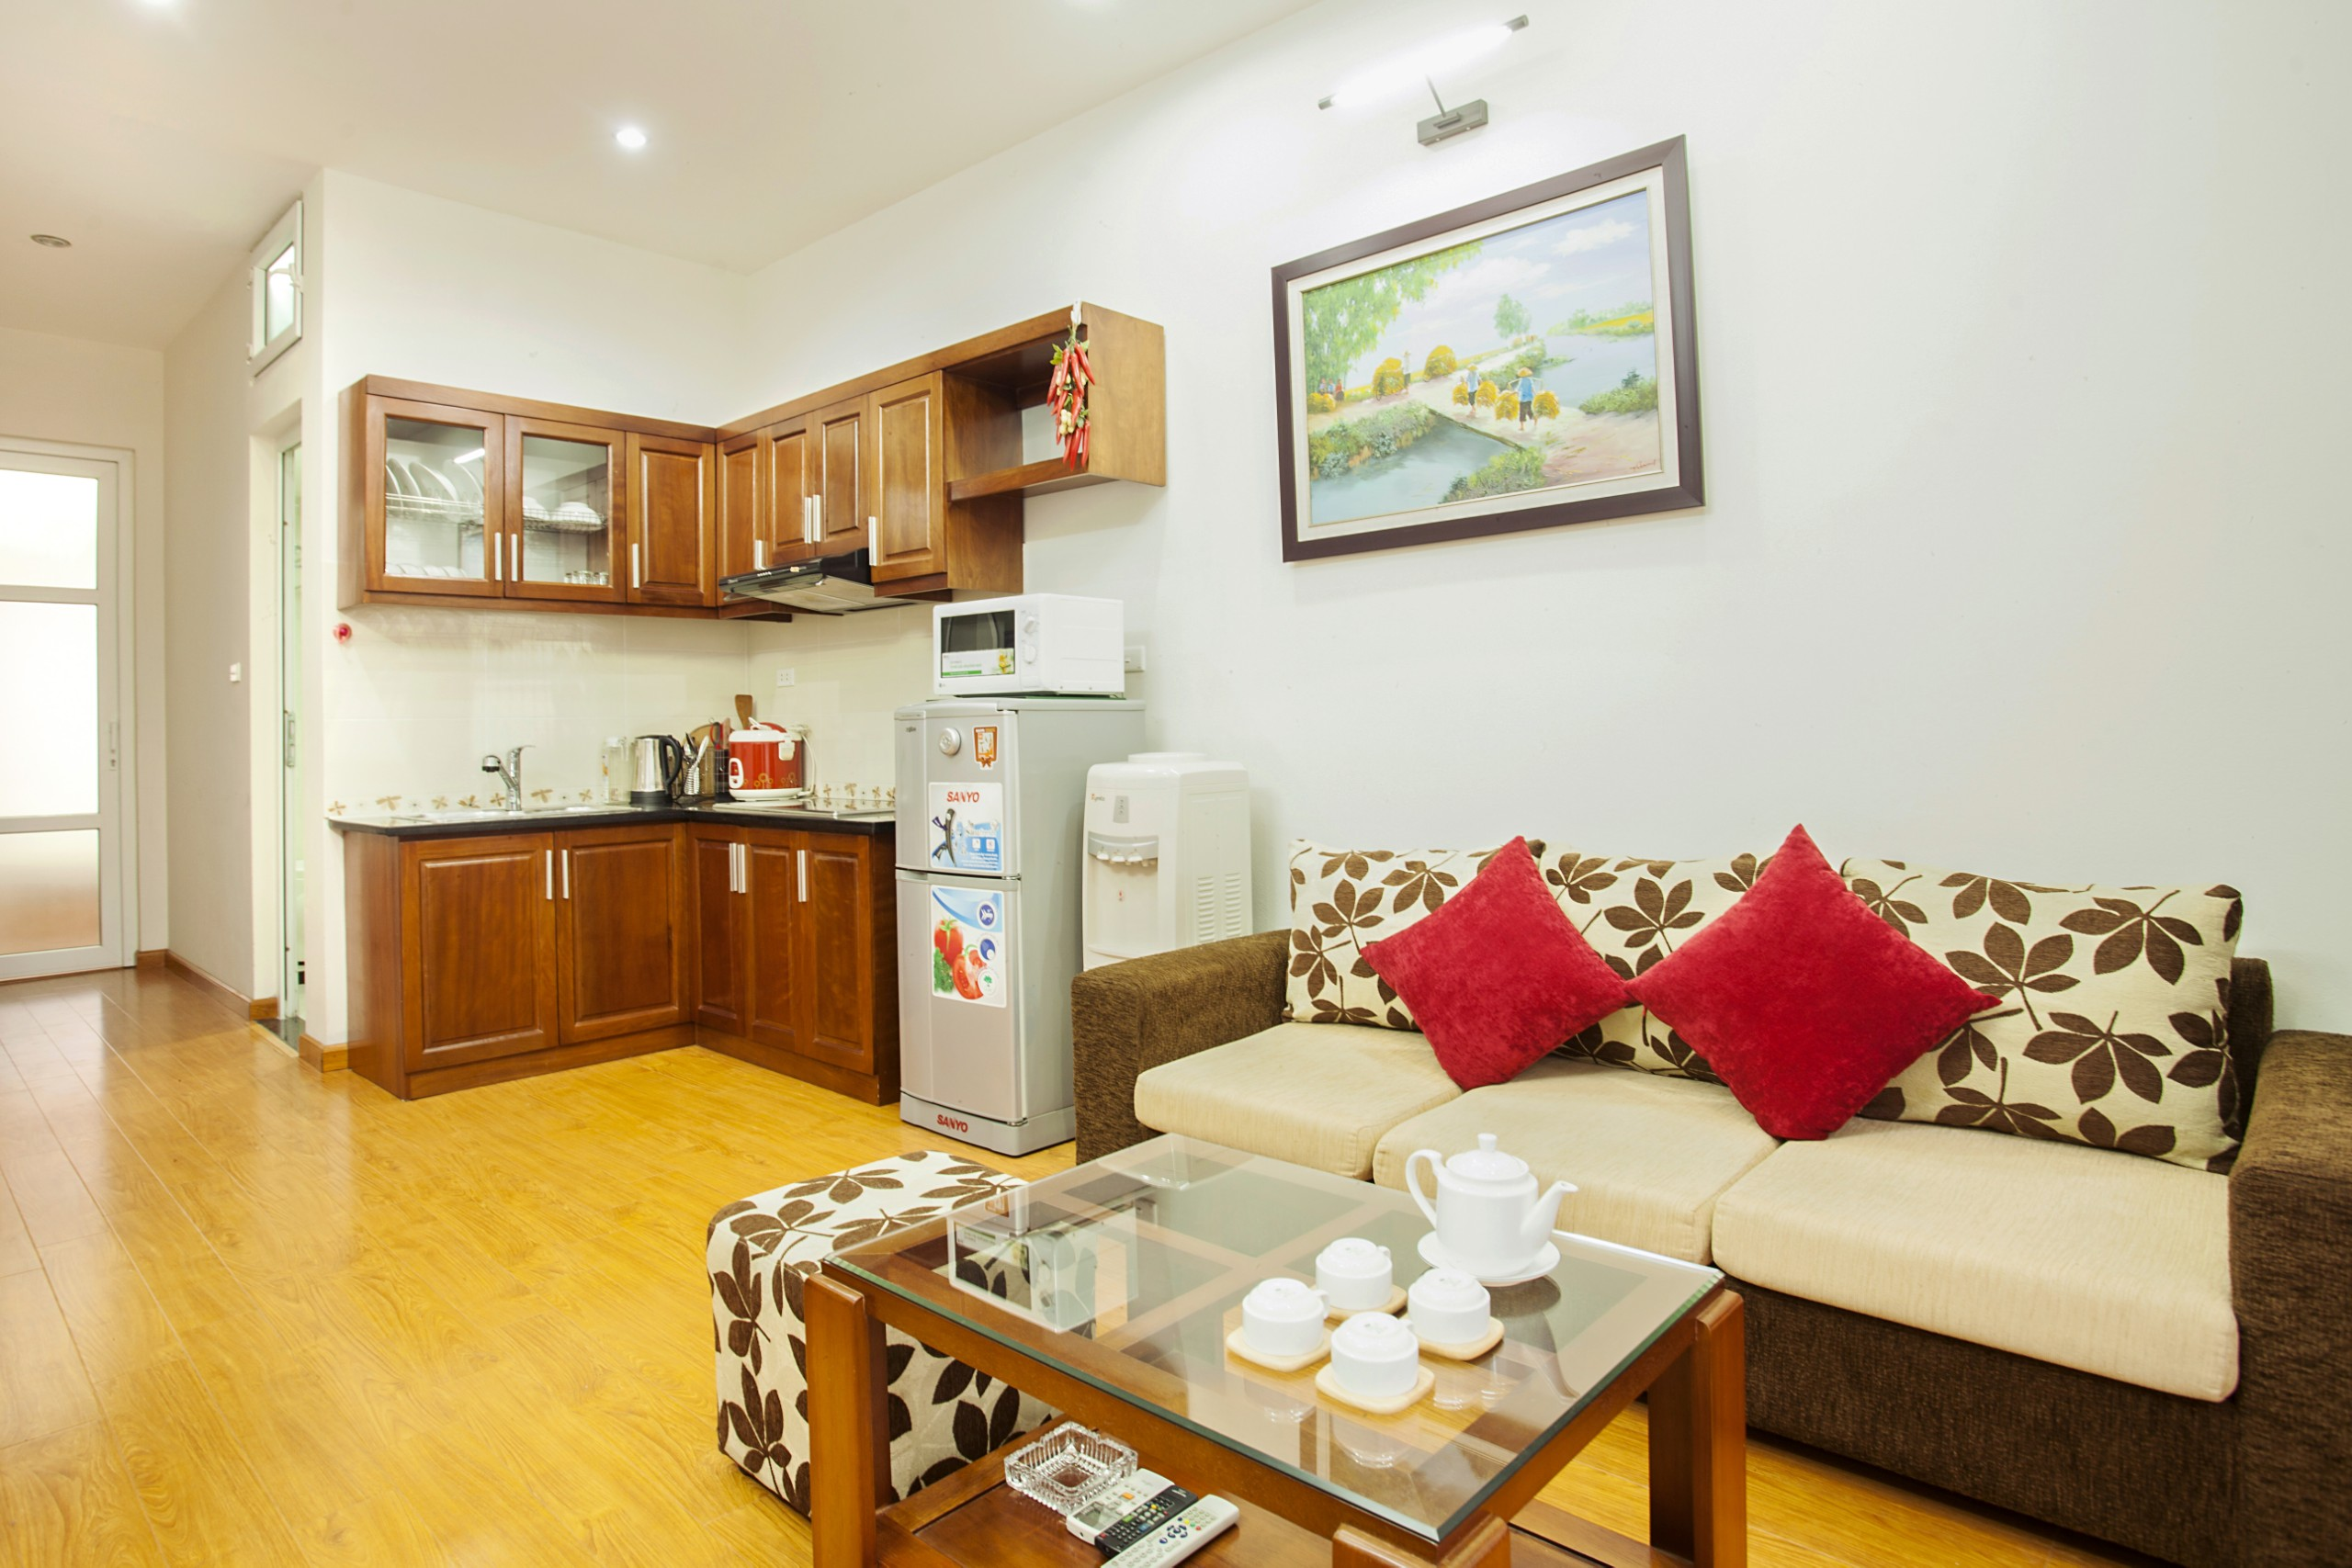 Well Designed Serviced apartment for rent in Lieu Giai street, Ba Dinh